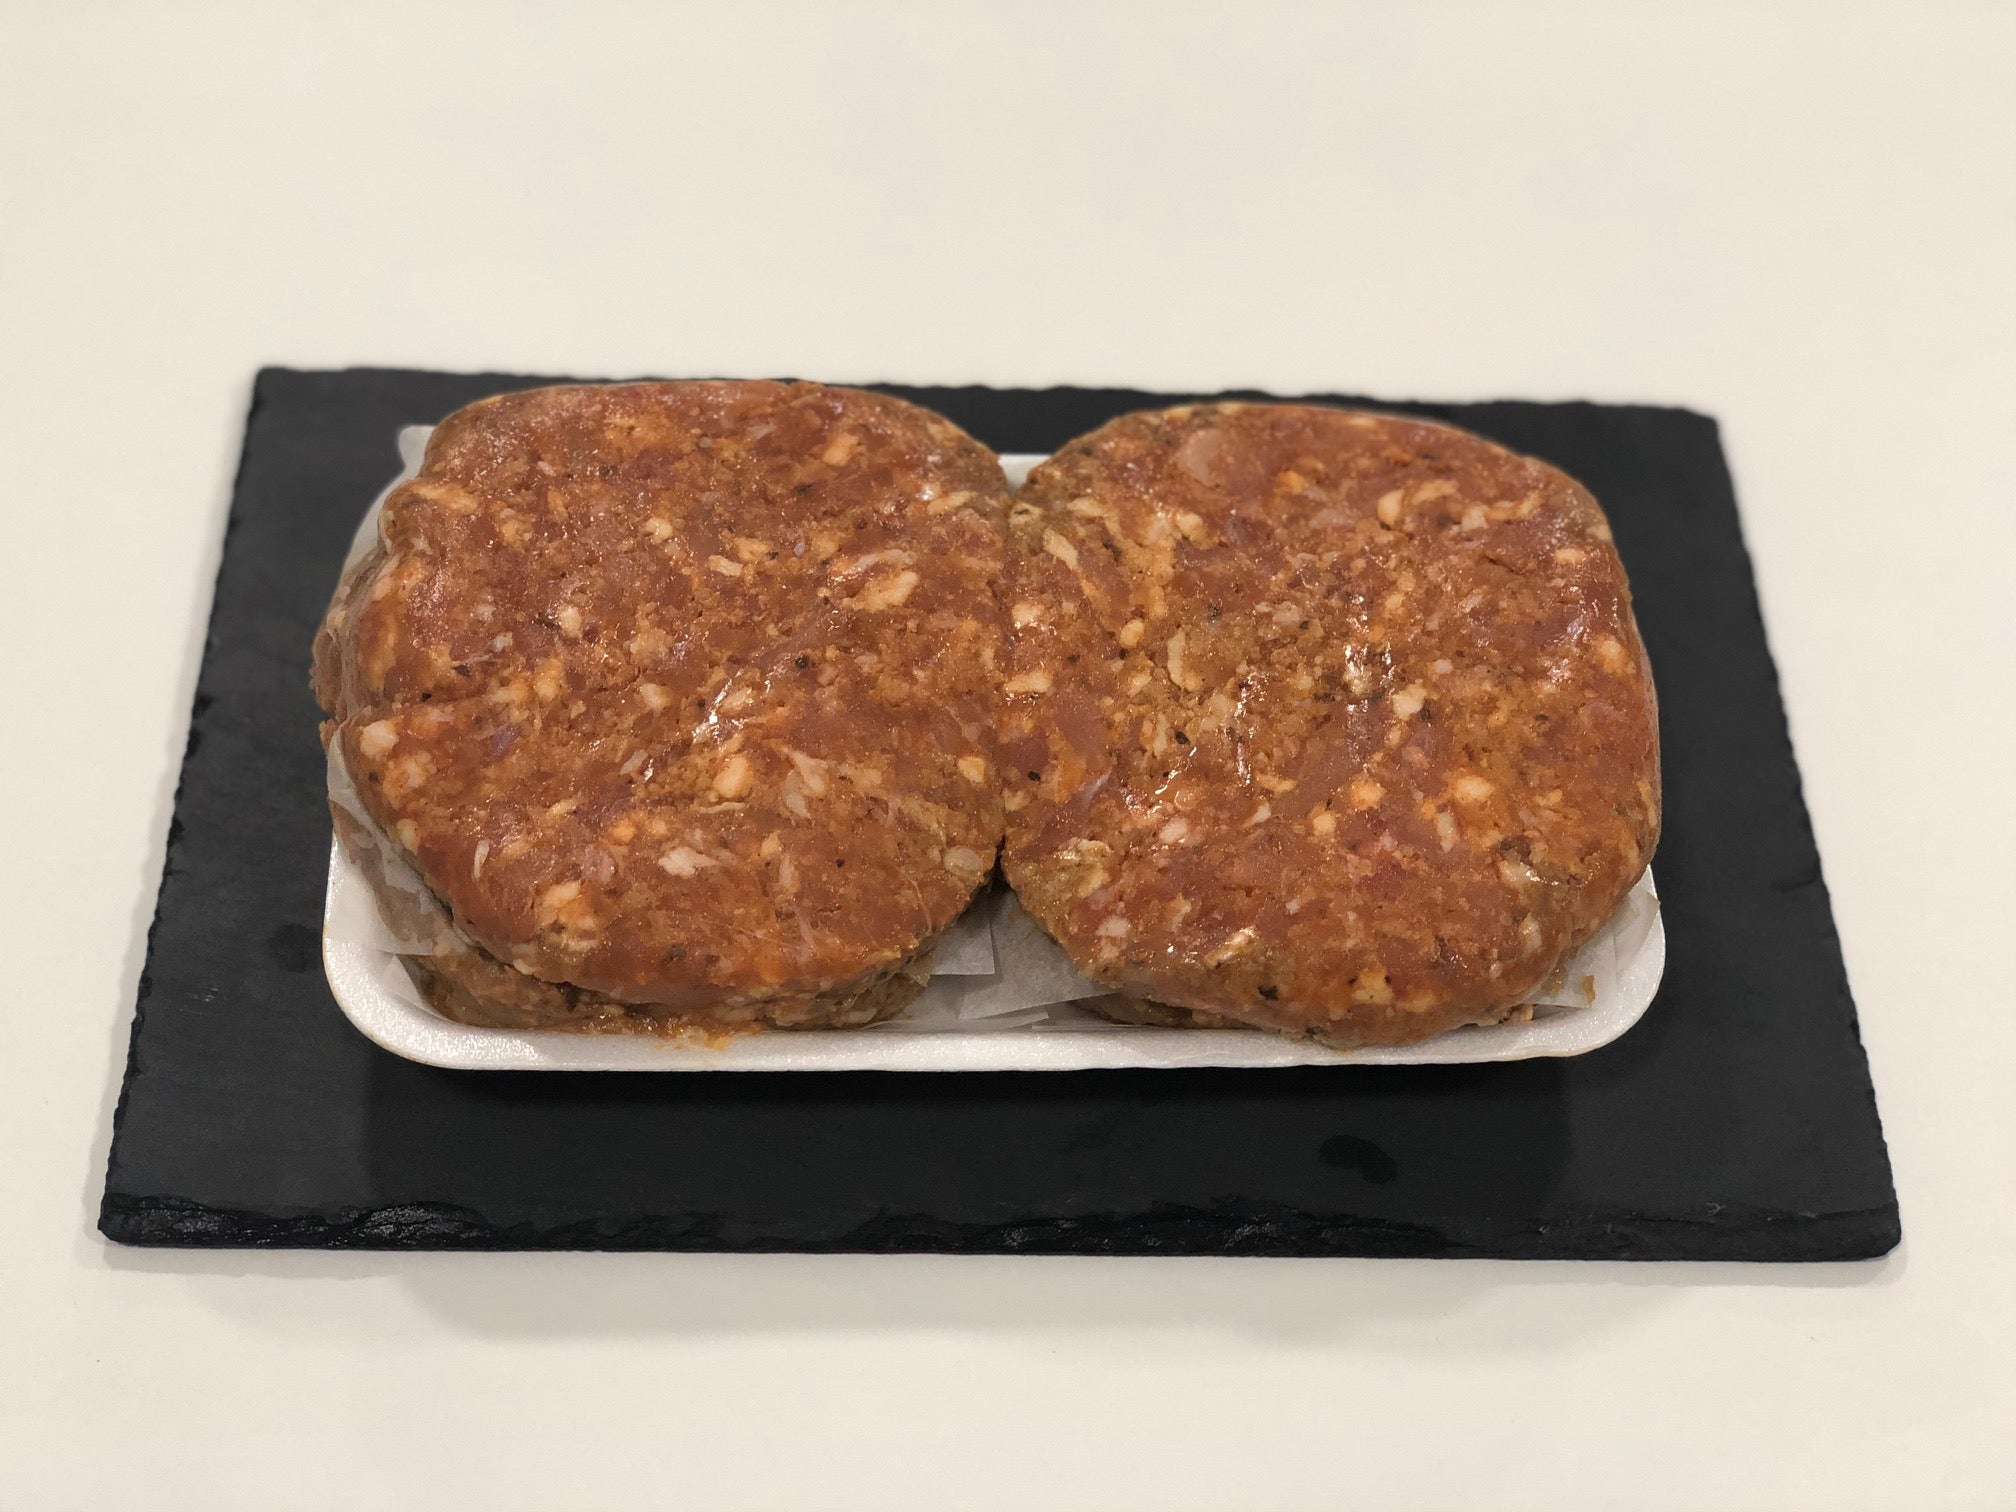 R&J 4 x 8oz Lamb and mint burgers - HGFD Produce